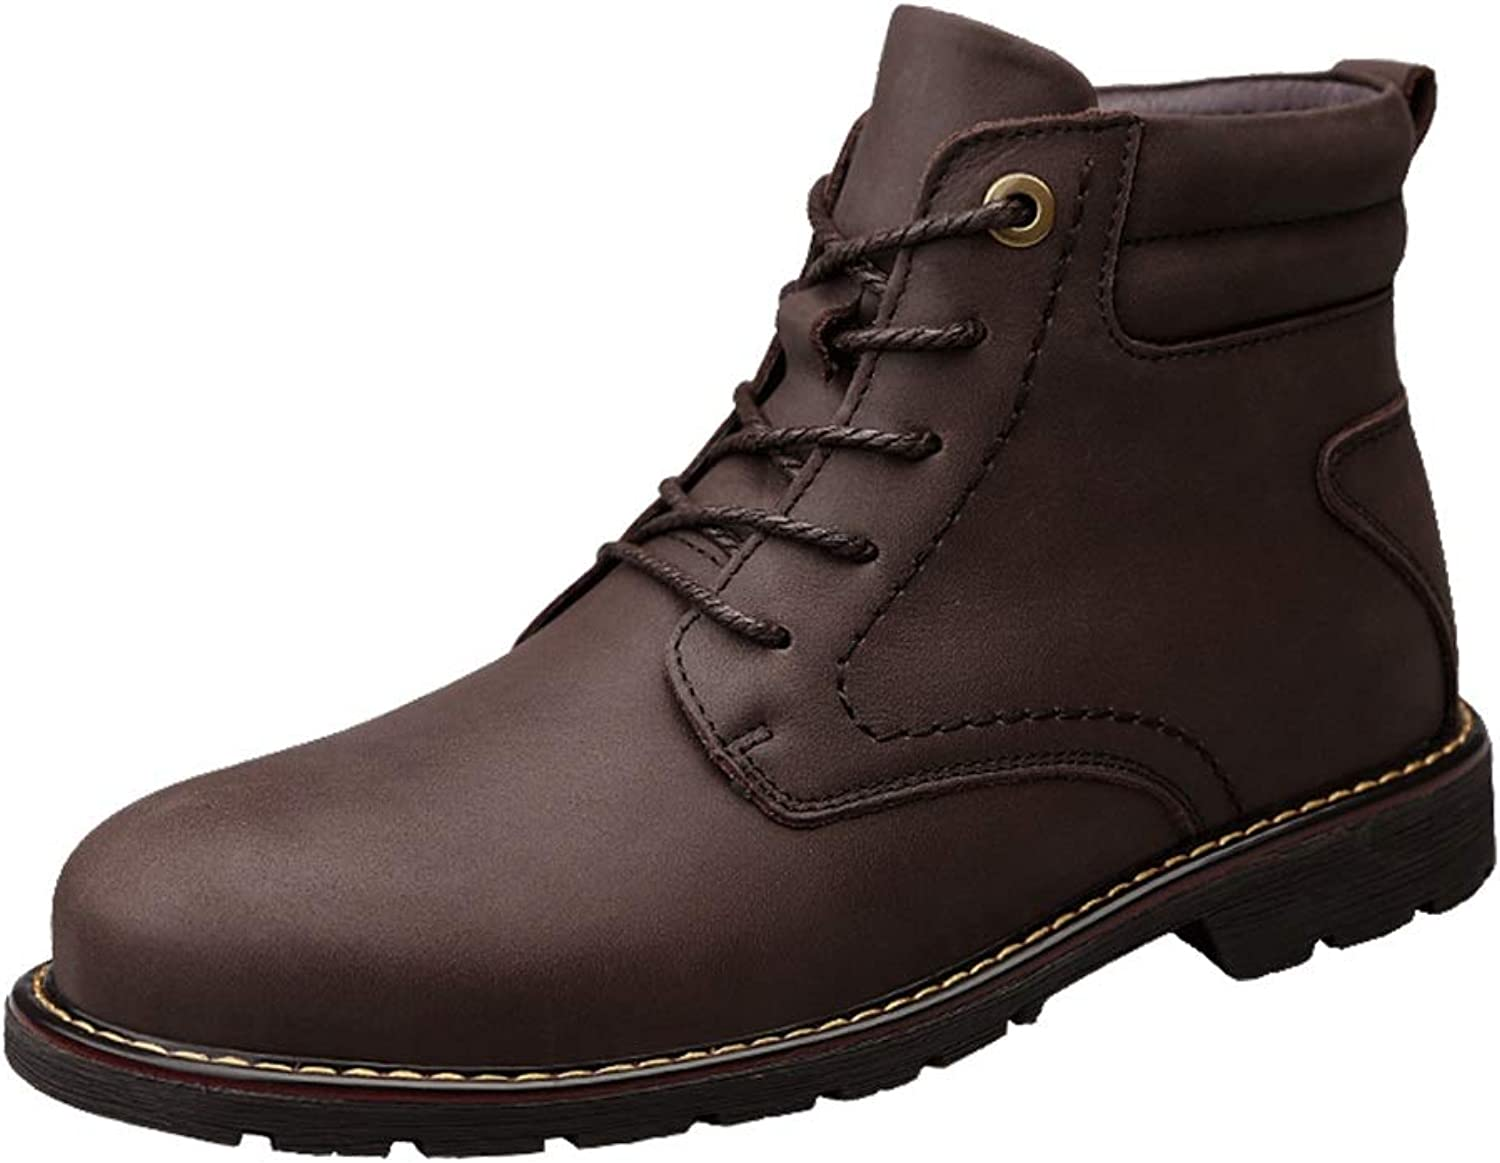 Men's Ankle Boots Casual Solid color Round Toe Rubber Outsole Martin Boots